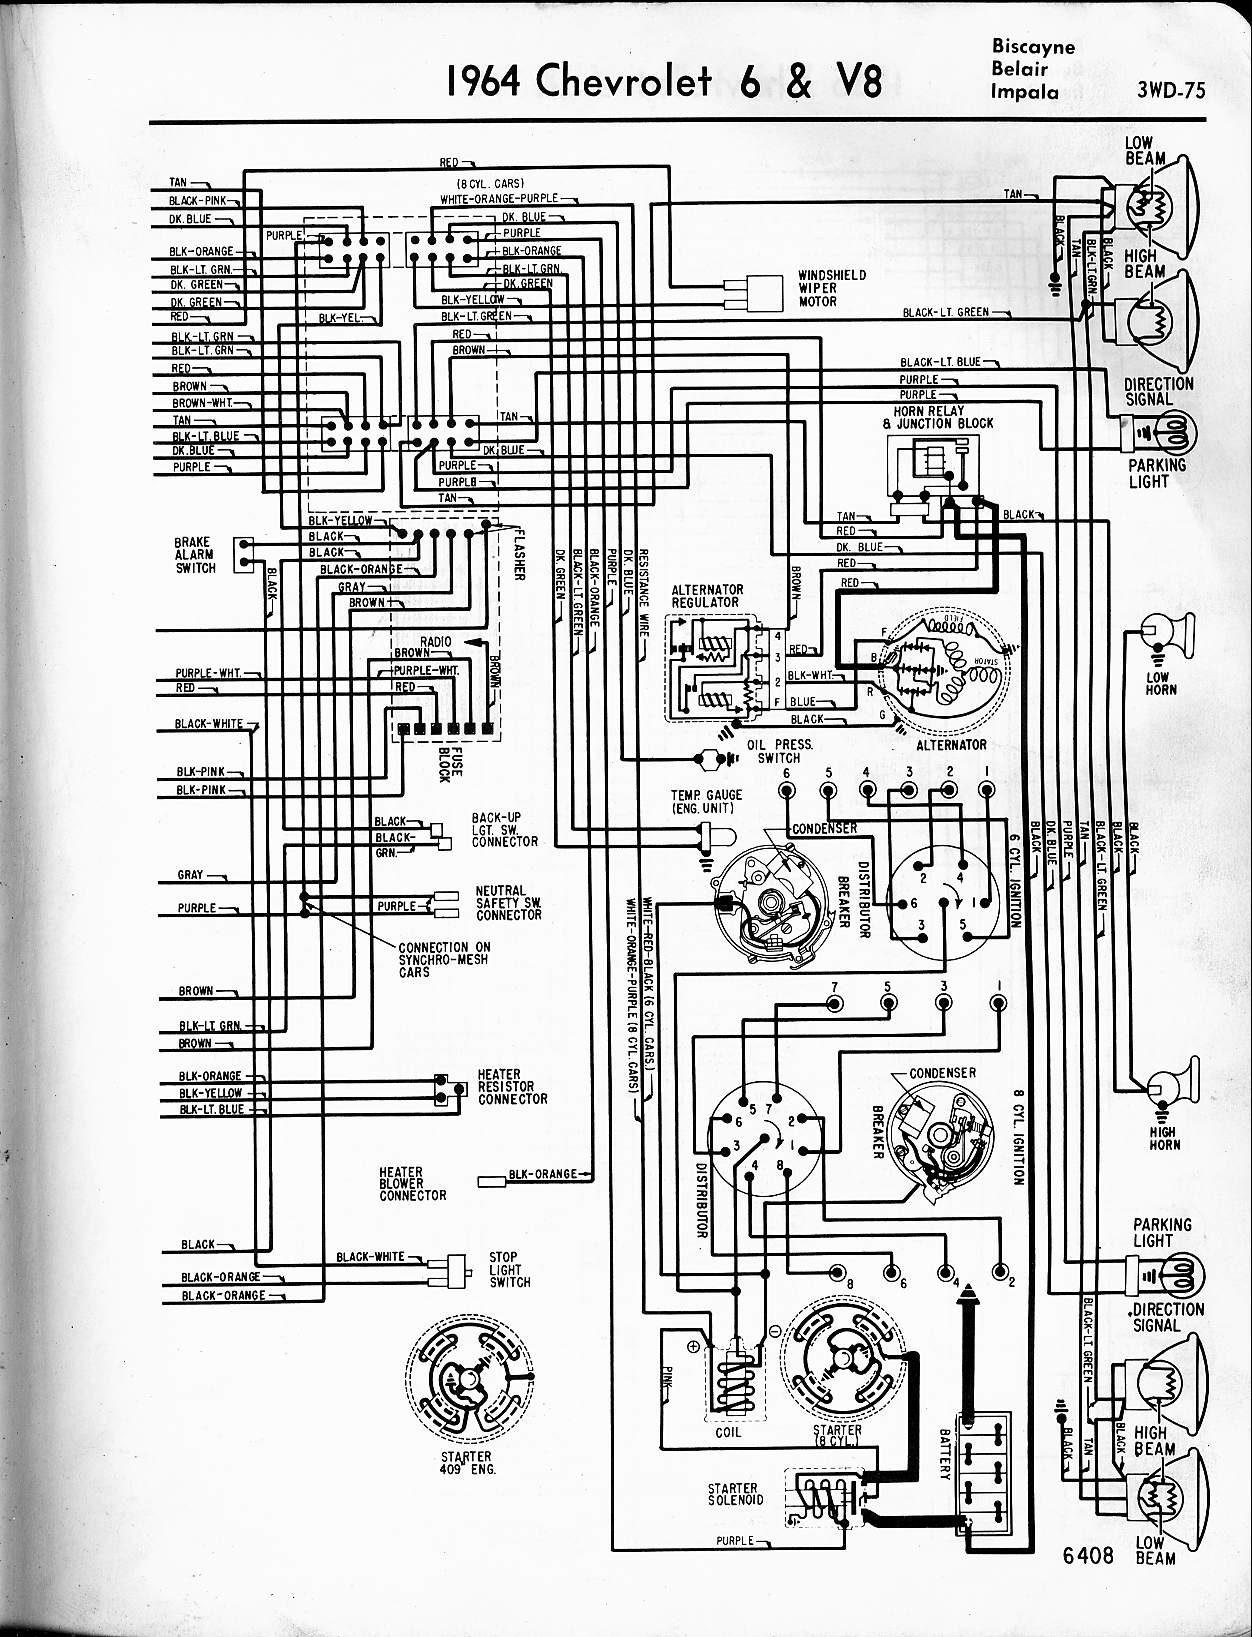 MWireChev64_3WD 075 i have 1964 chevy impala can you tell me where the three wires go 2003 impala wiring diagram at fashall.co